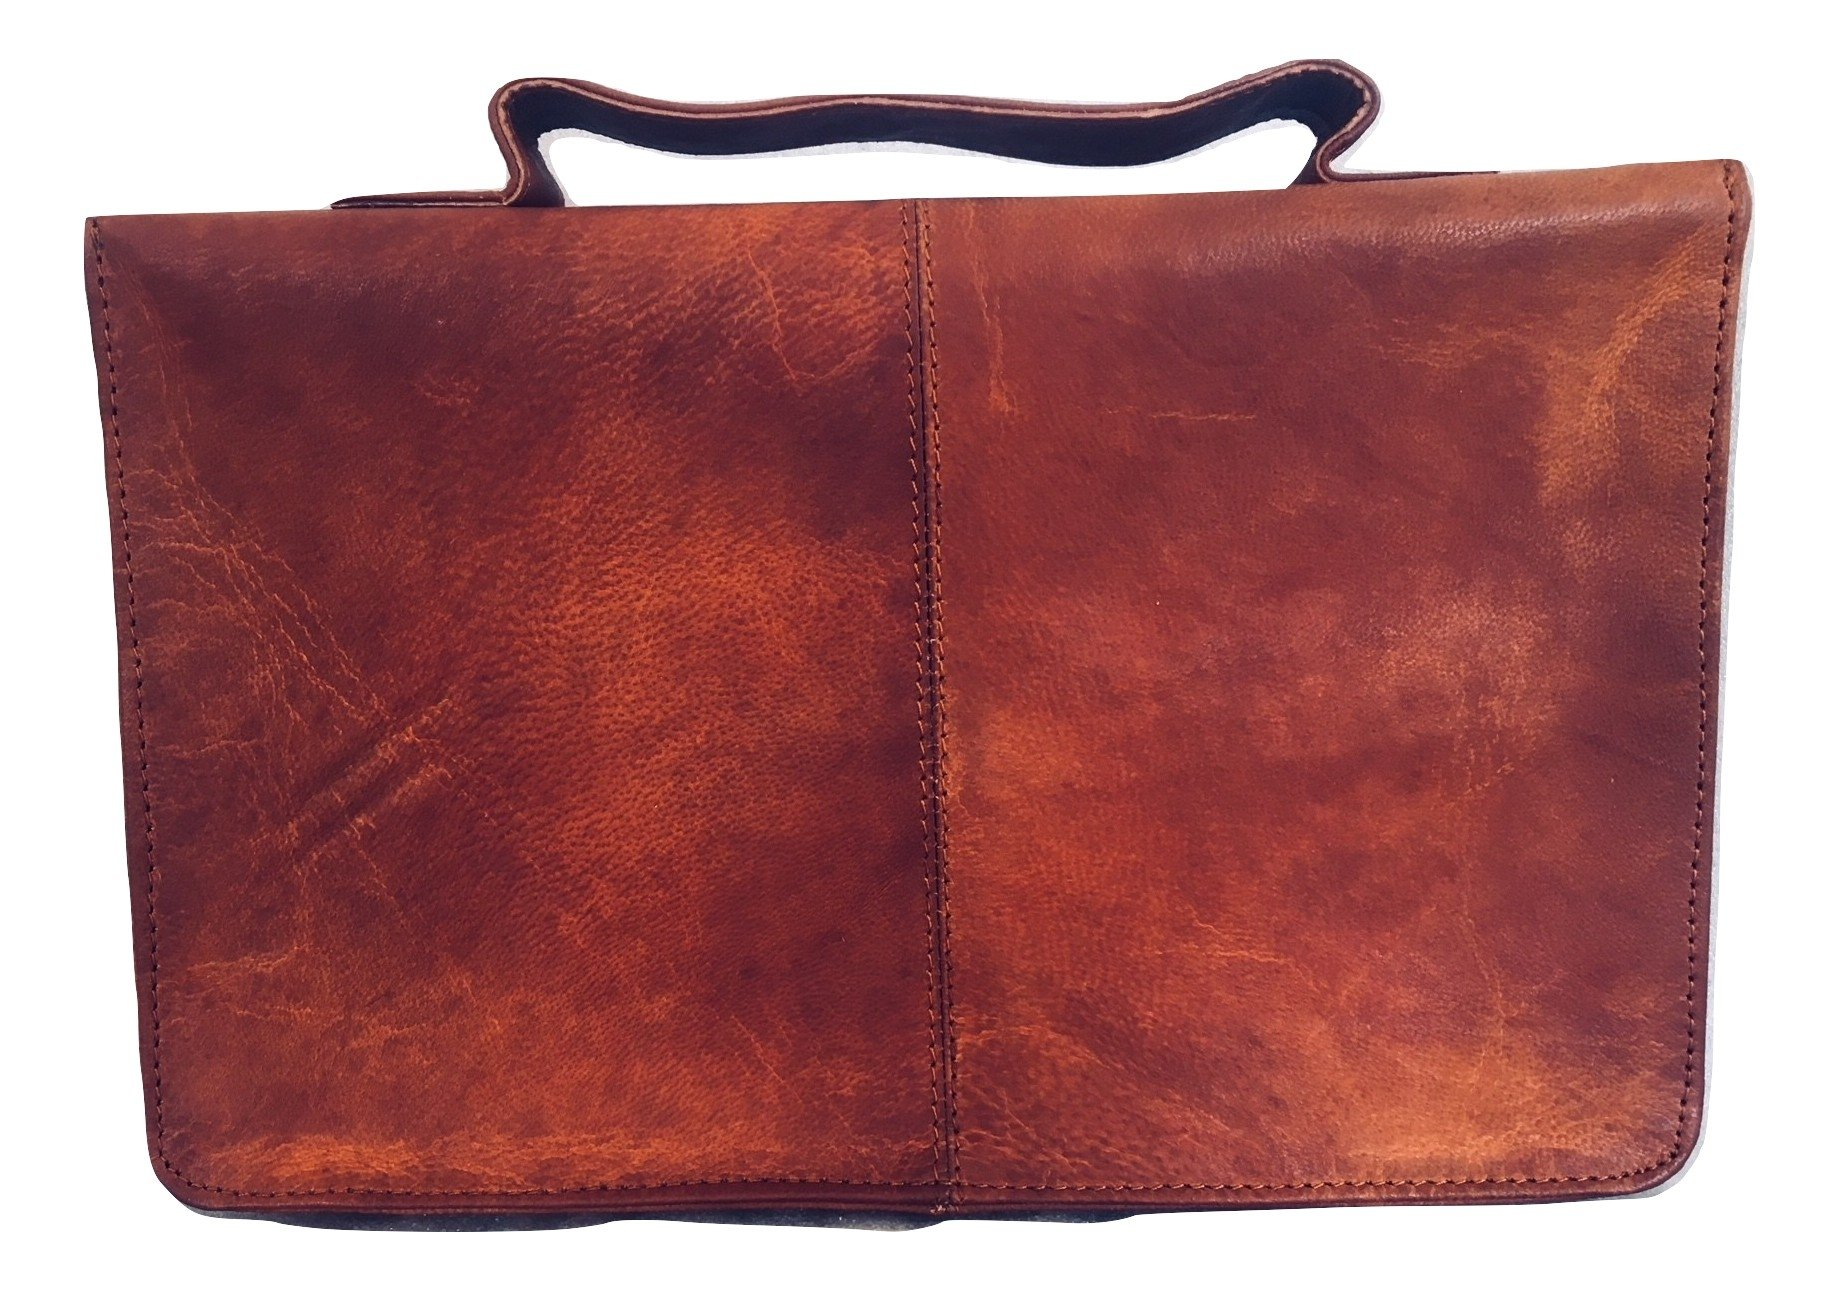 Leather Classic Bible Cover Book Cover with Back Pocket Brown by vintage crafts